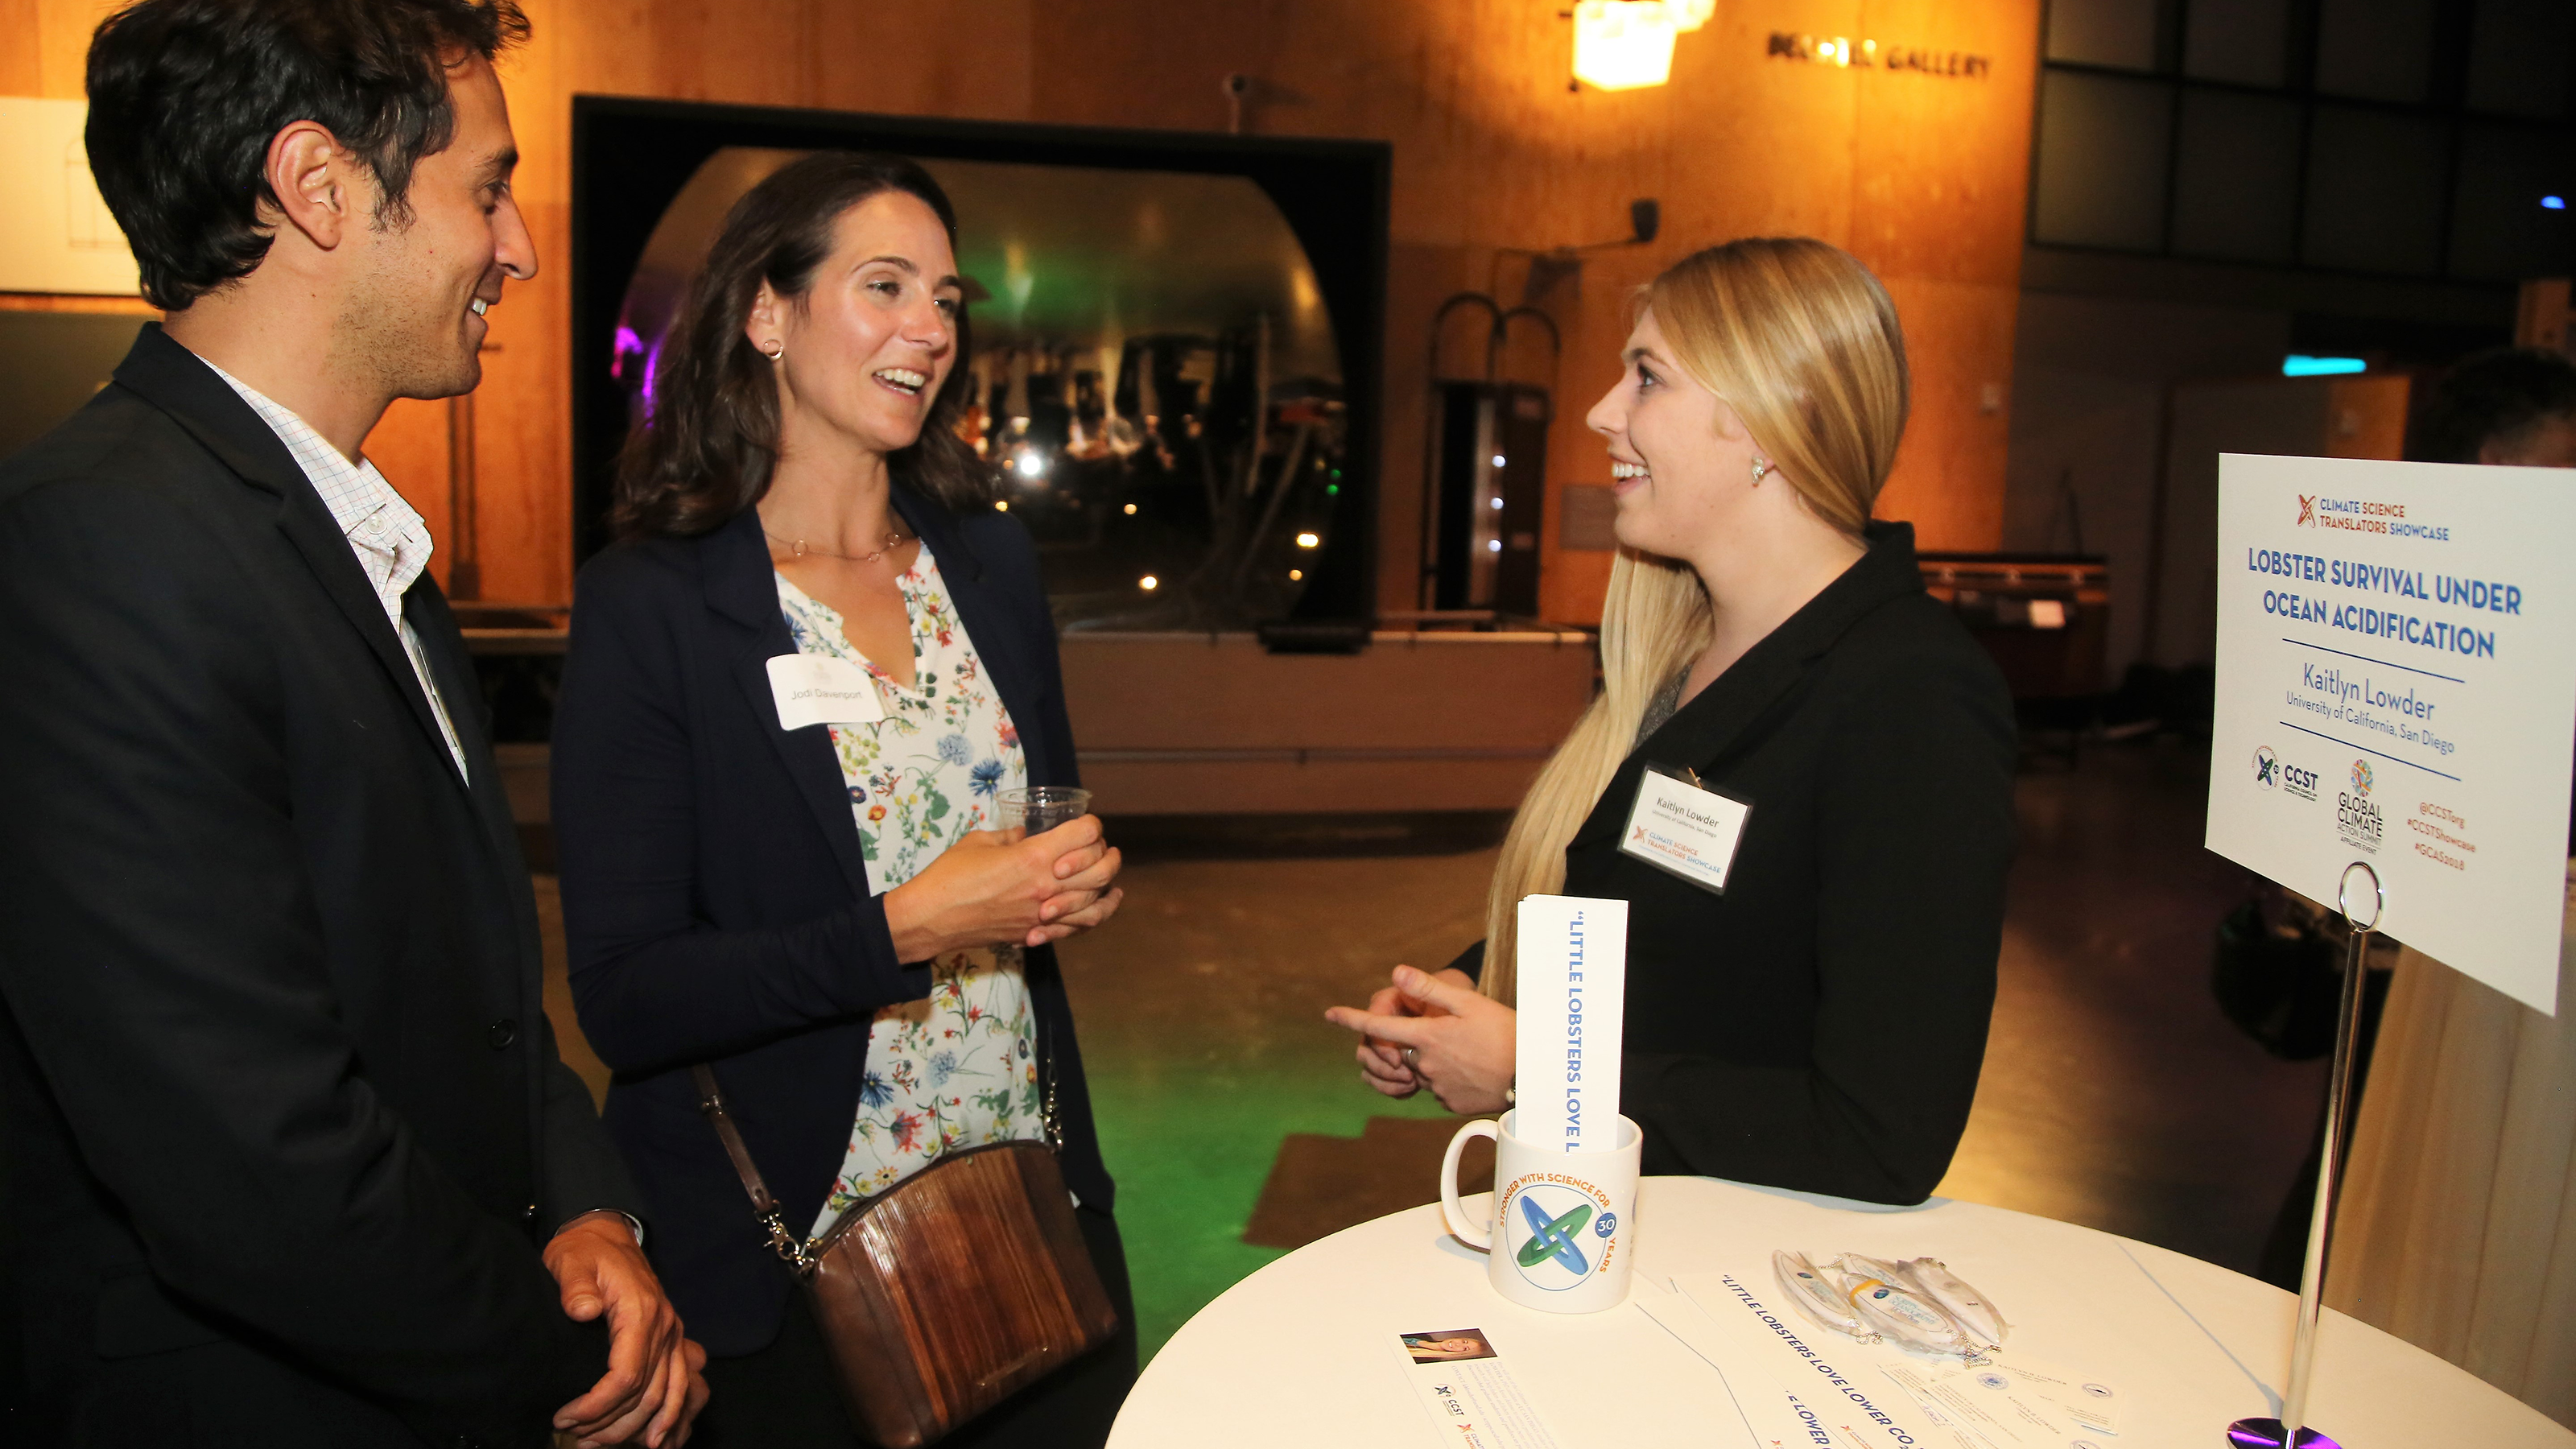 """UC San Diego Scripps Institution of Oceanography doctoral student Kaitlyn Lowder explains her research on ocean acidification and juvenile crustaceans at the CCST Climate Science Translators Showcase.  The California Council on Science and Technology (CCST) hosted the CCST Climate Science Translators Showcase on Tuesday, September 11, 2018 at the Exploratorium as an Affiliate Event of the historic Global Climate Action Summit in San Francisco — held during the """"Celebration of Science and Education"""" reception hosted by the Governor's Office of Planning and Research (OPR), CCST, the Gordon and Betty Moore Foundation, CalEPA, and Ten Strands. The #CCSTShowcase recruited and trained 12 graduate students and postdocs from California universities and research institutions to communicate their climate-related research to policy leaders, staff, and other Summit delegates."""